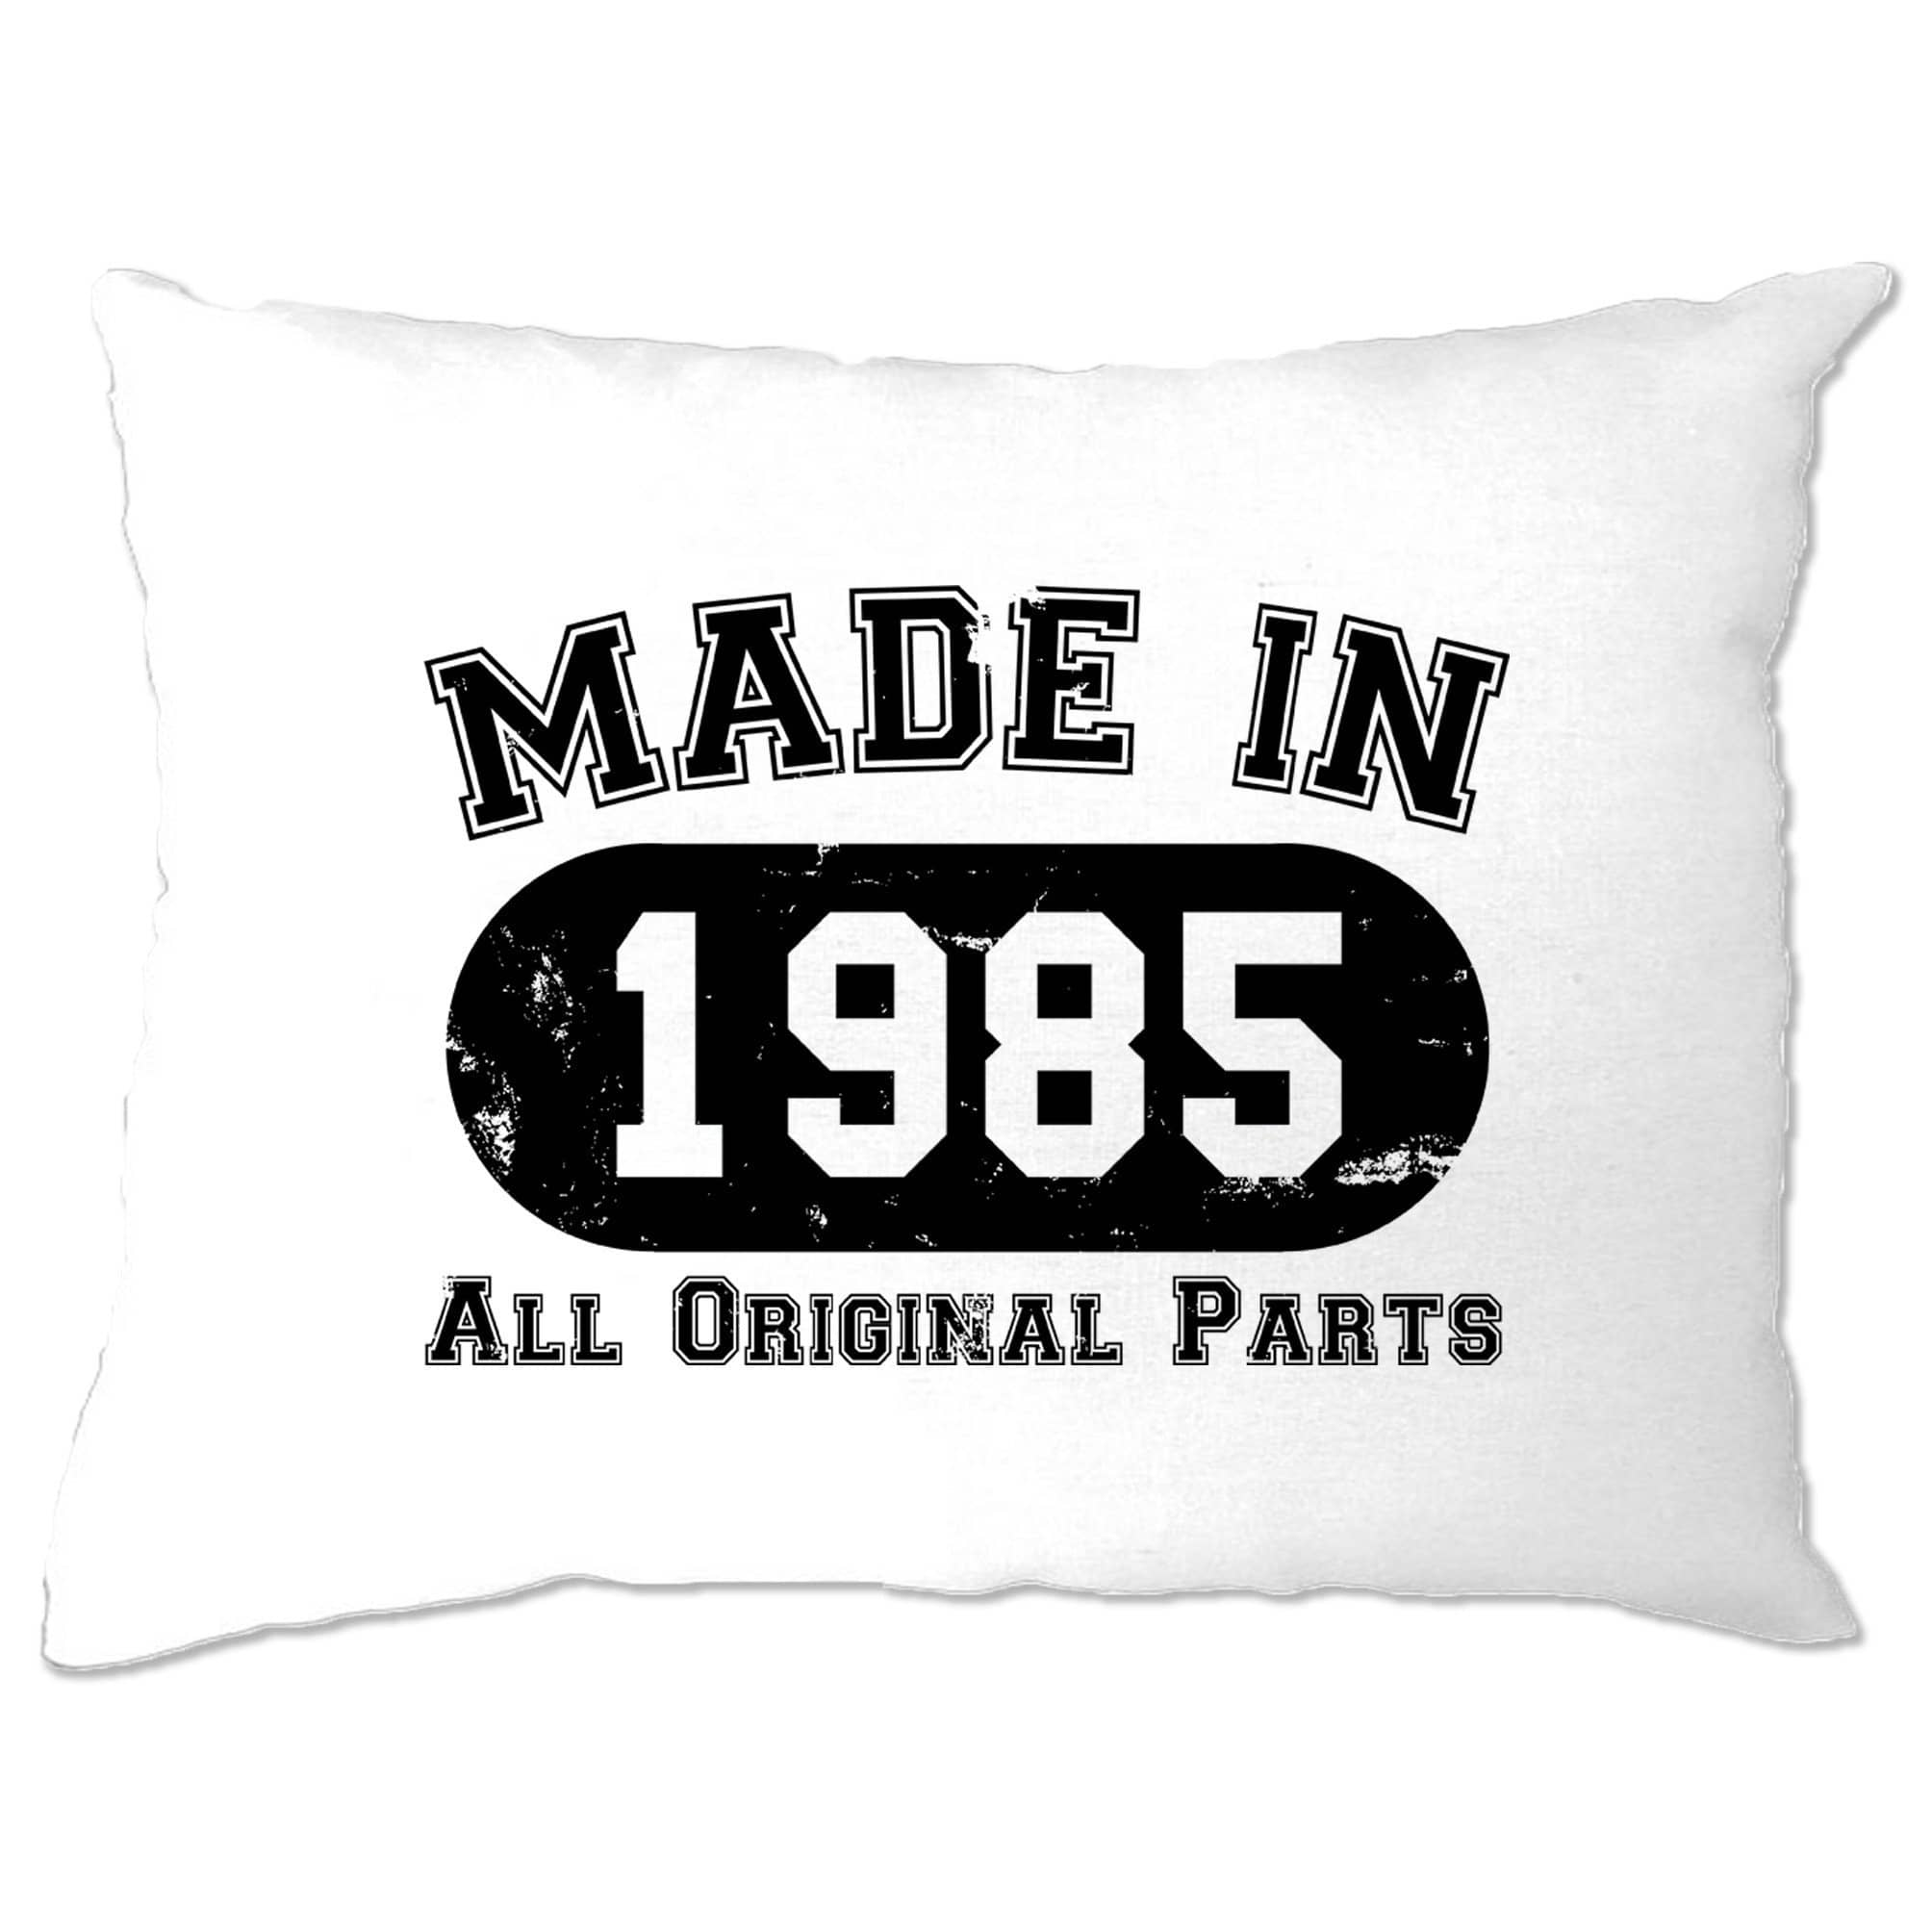 Made in 1985 All Original Parts Pillow Case [Distressed]